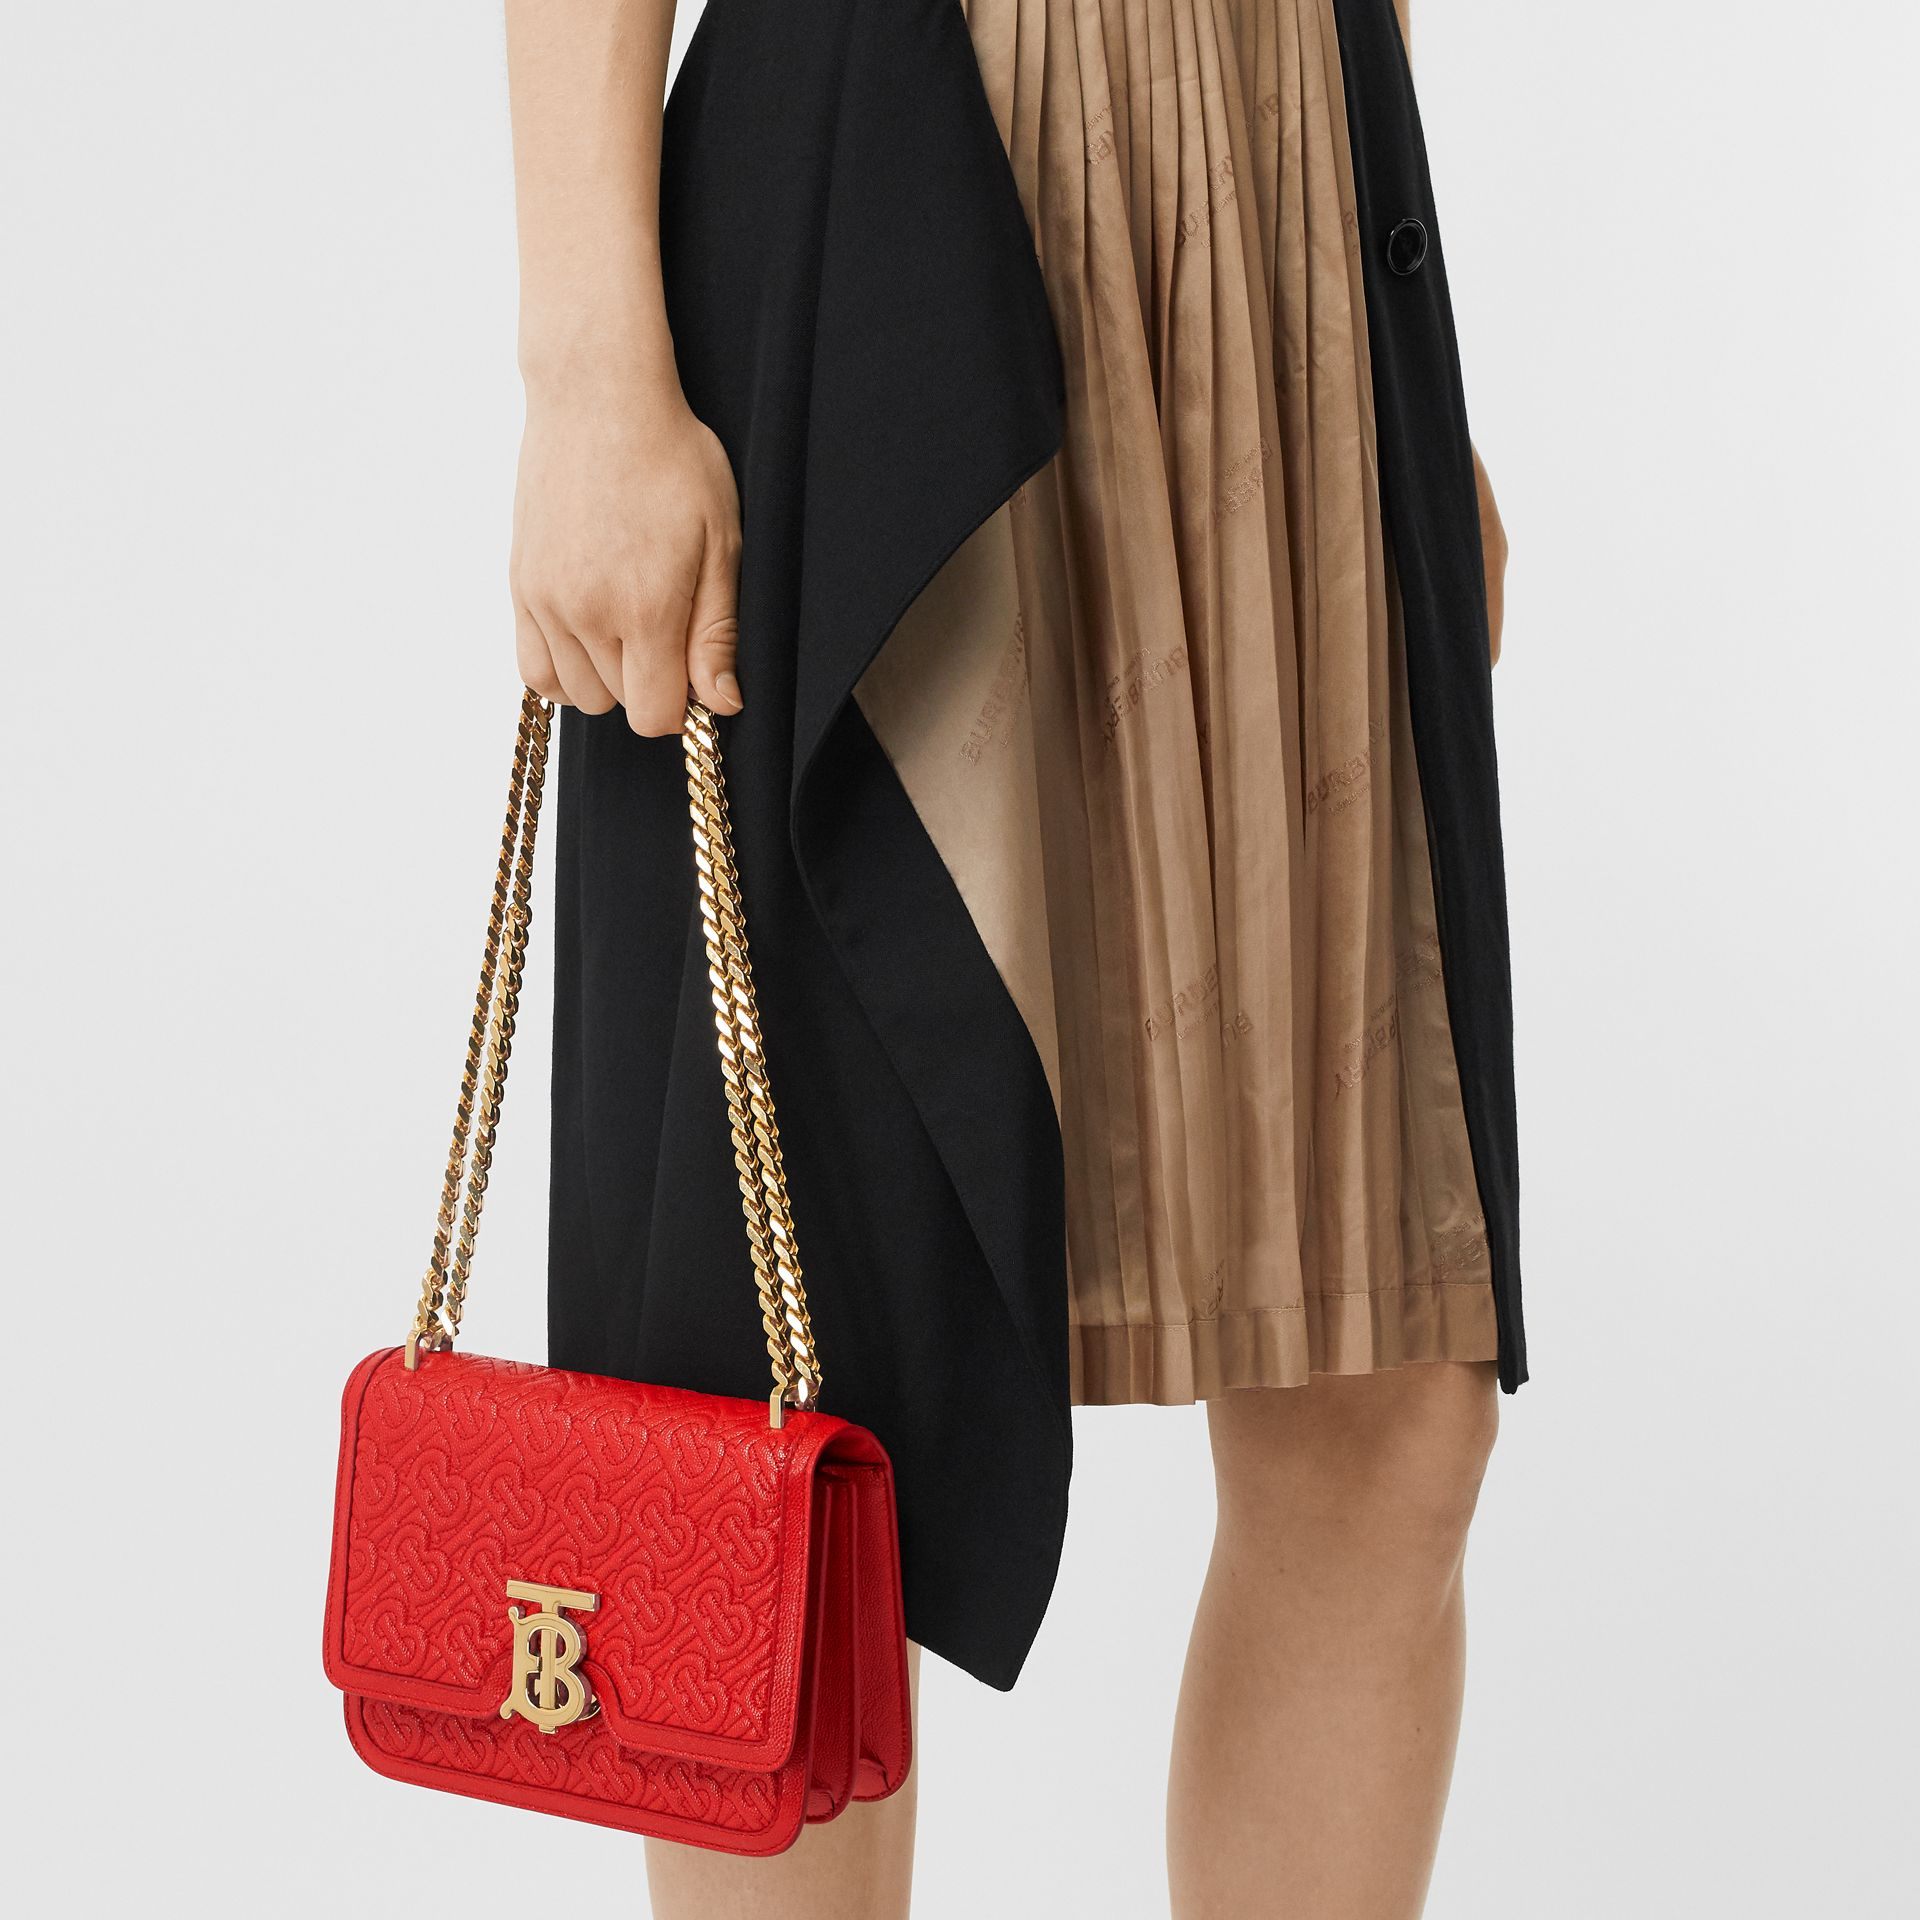 Small Quilted Monogram Leather TB Bag in Bright Red - Women   Burberry - gallery image 2